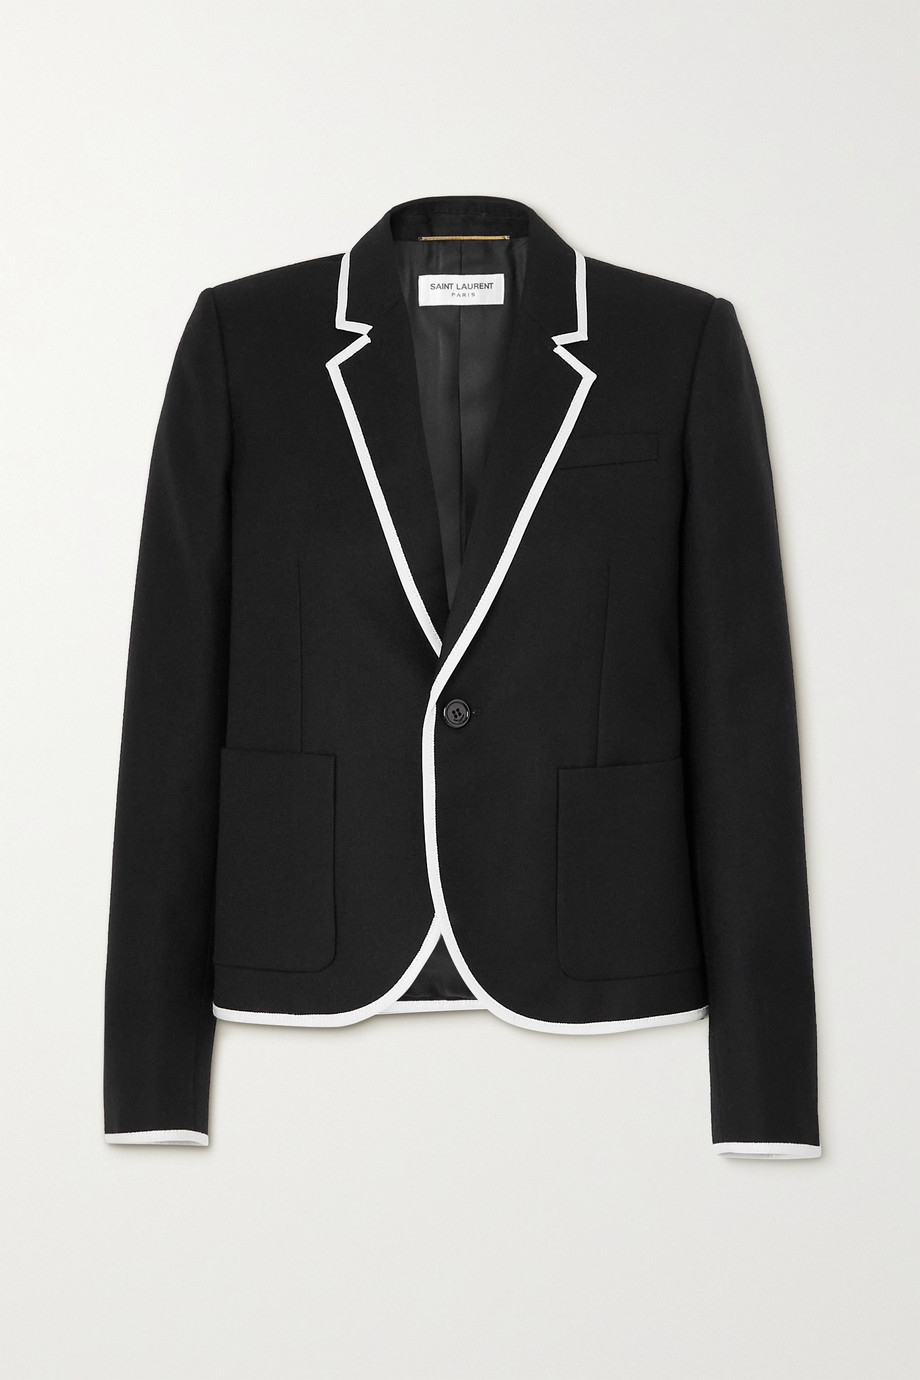 SAINT LAURENT Piped wool blazer